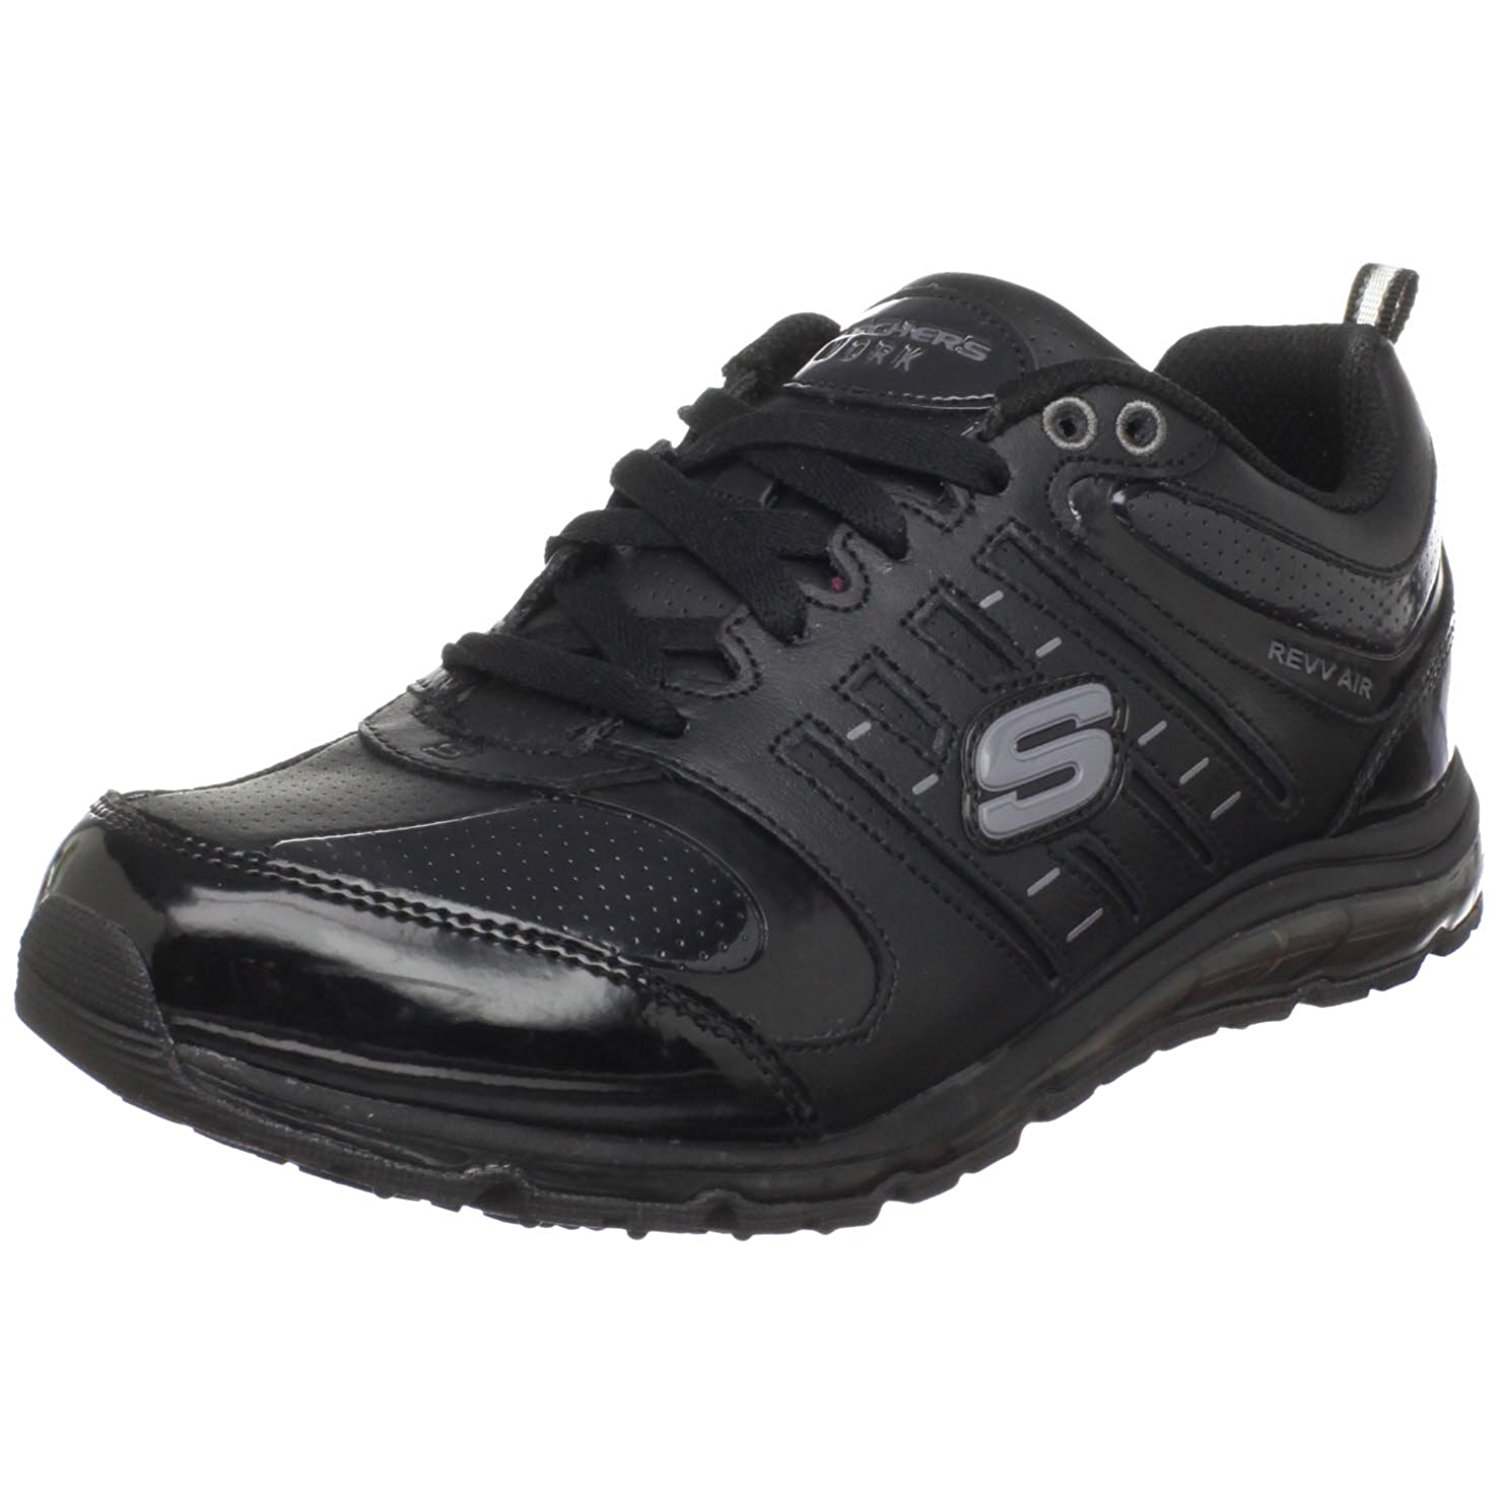 Skechers for Work Women's Air-Revvolution Sneaker,Black